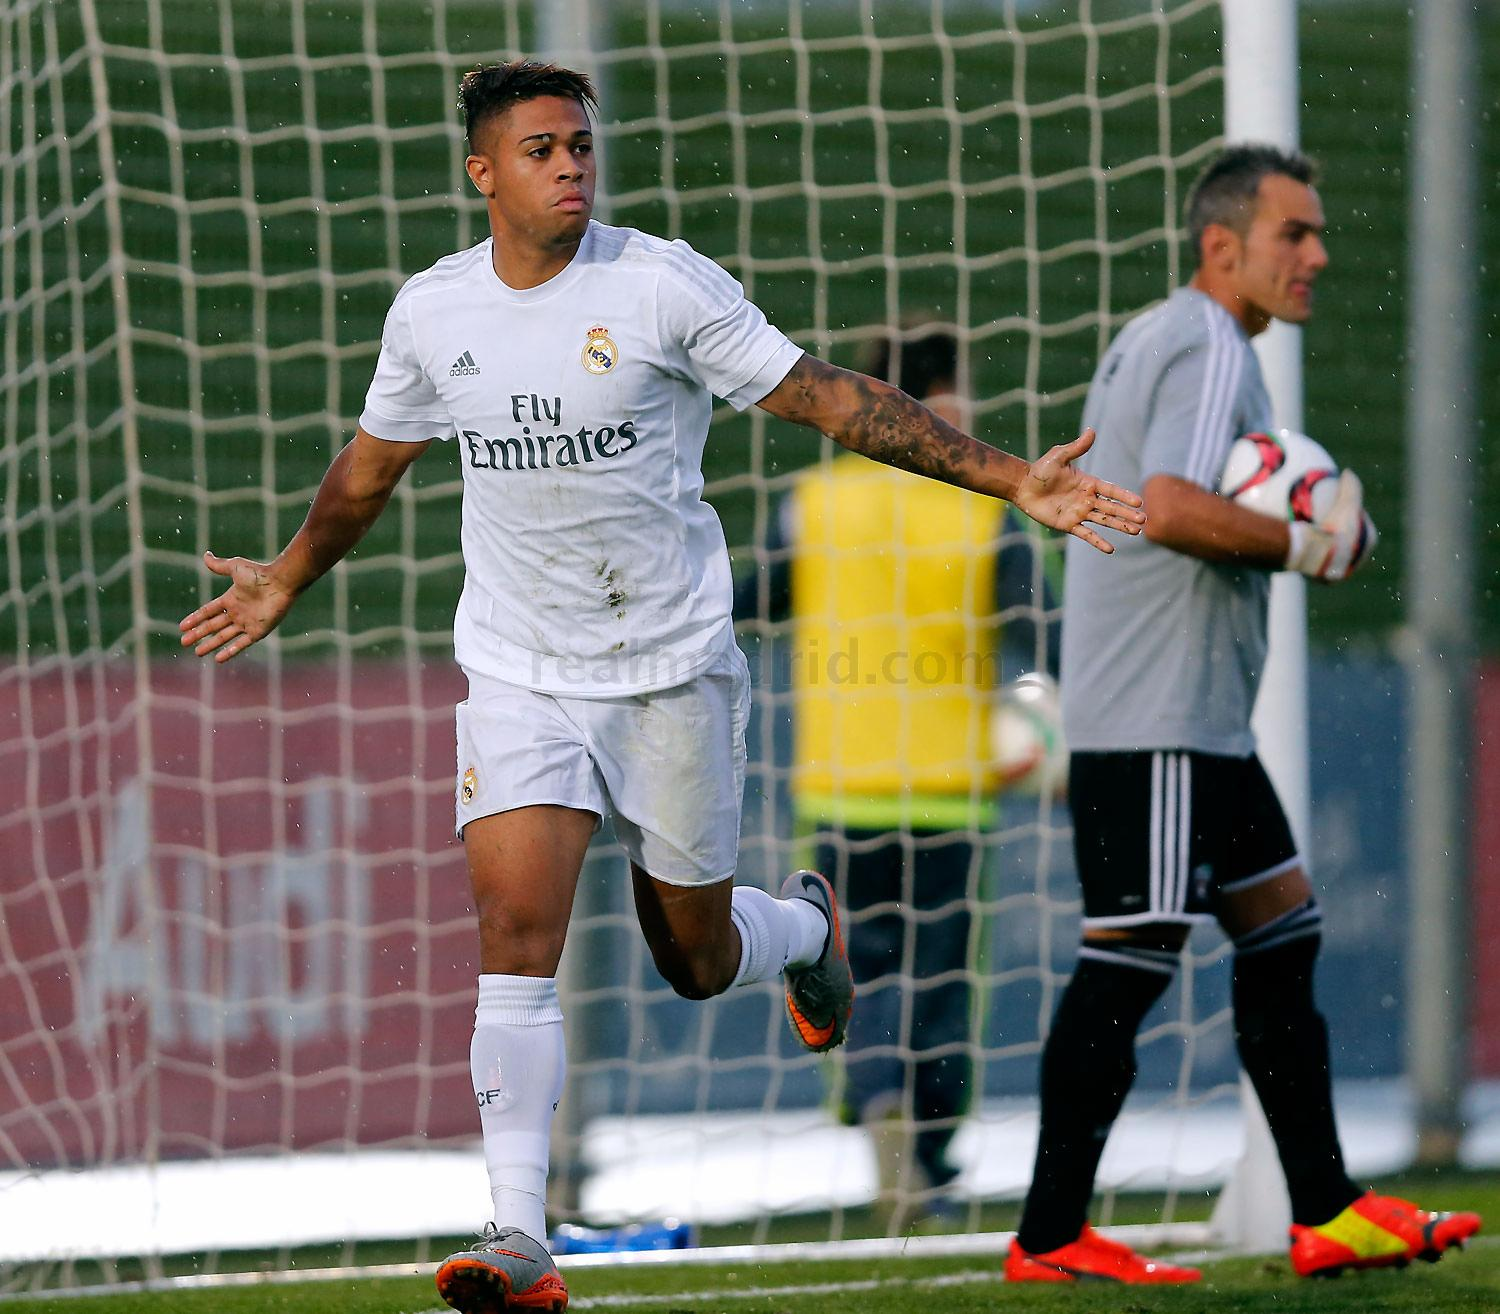 Real Madrid - Real Madrid Castilla - Arenas Club - 10-10-2015